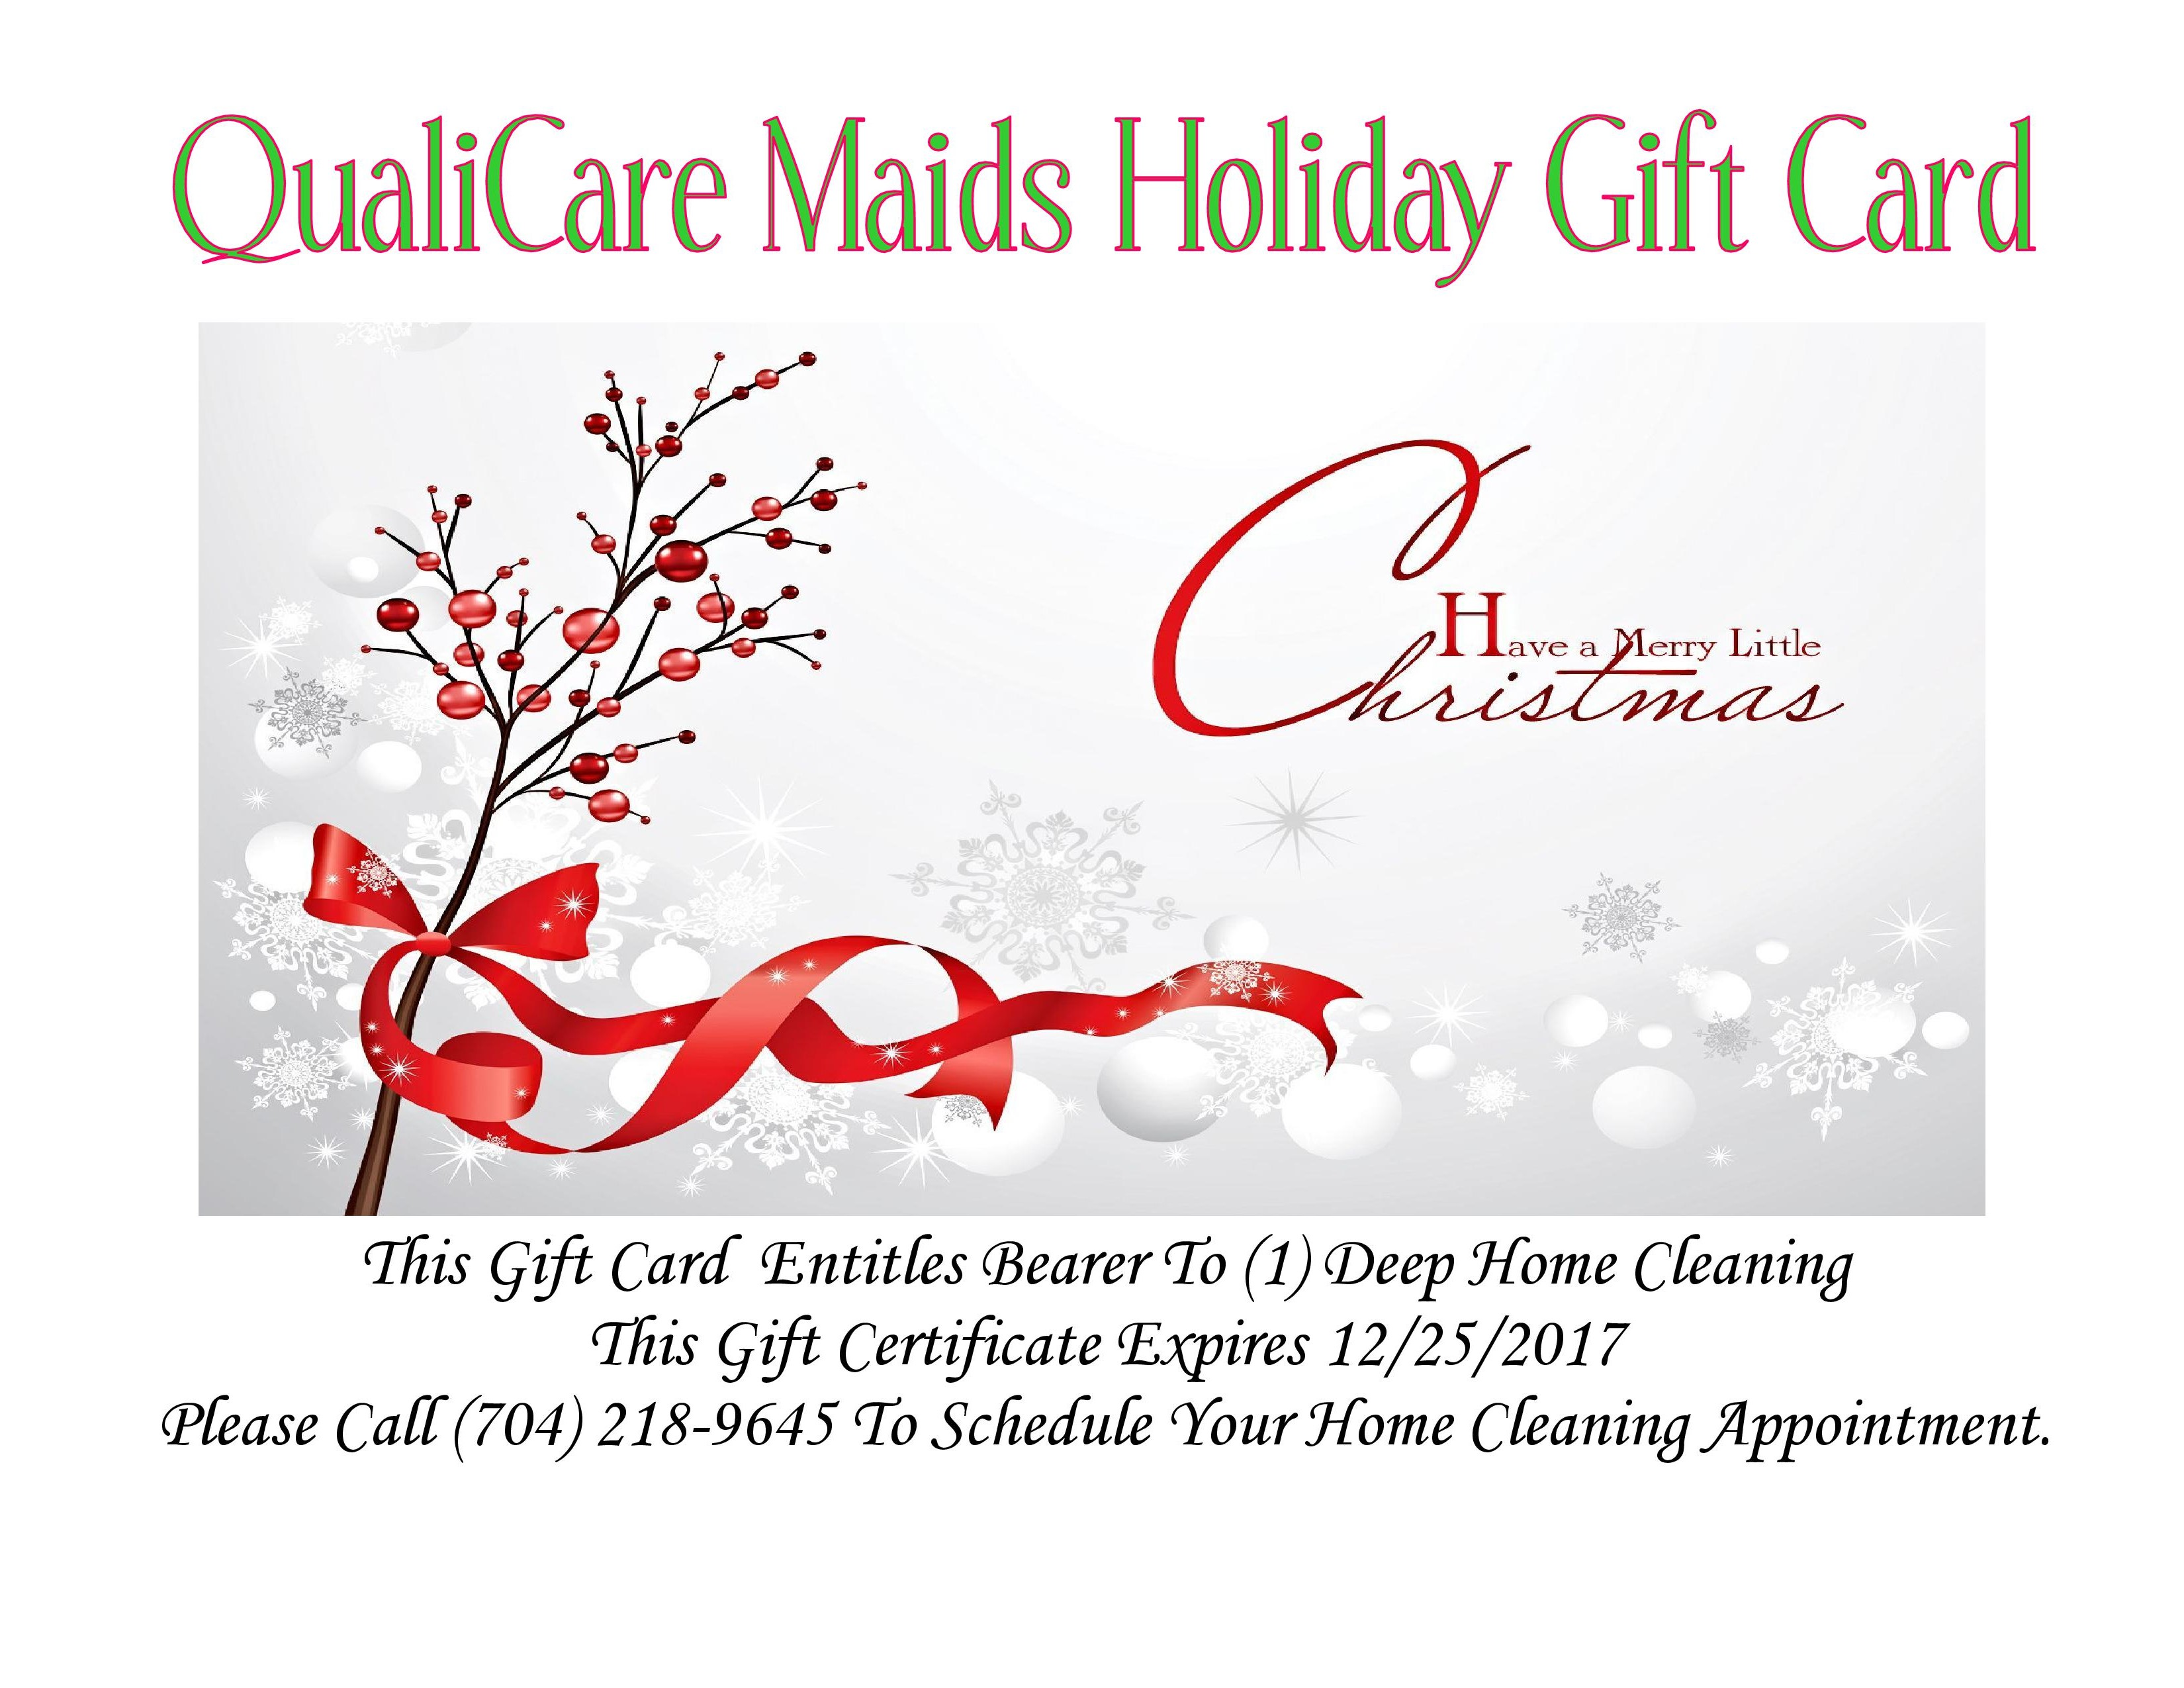 QualiCare Maids Home Cleaning Services Charlotte NC